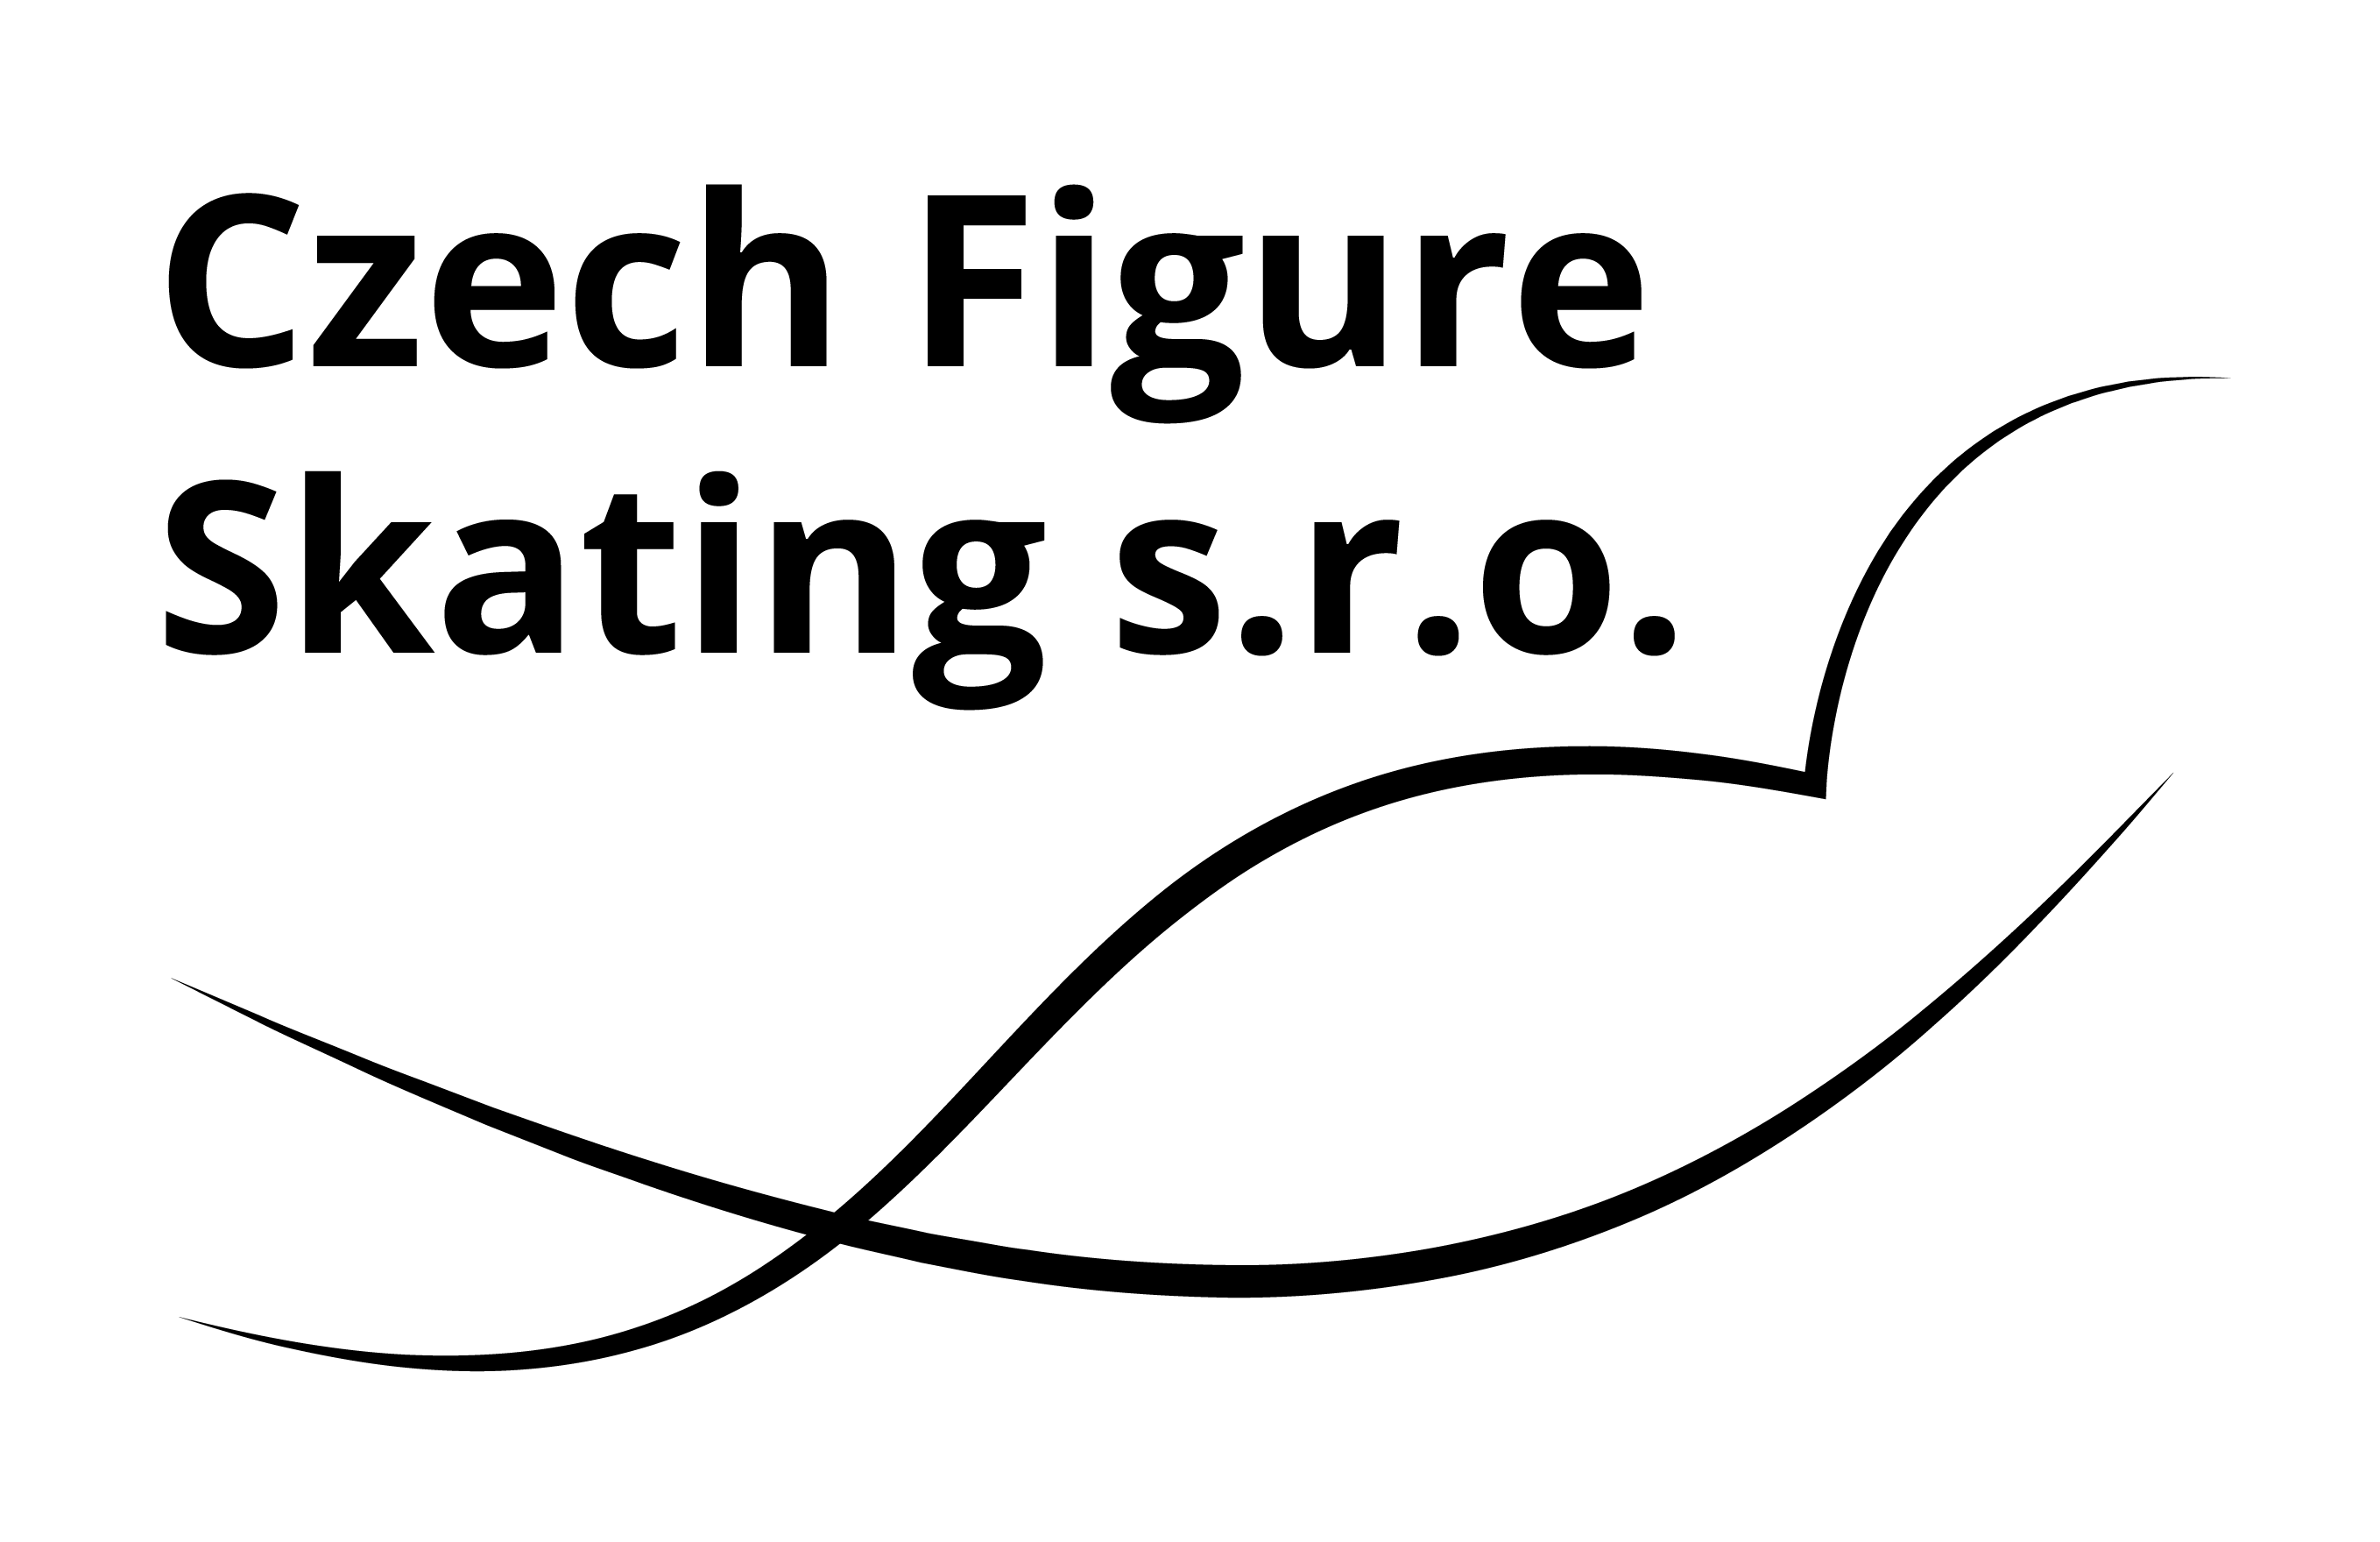 Eshop Czech Figure Skating s.r.o.